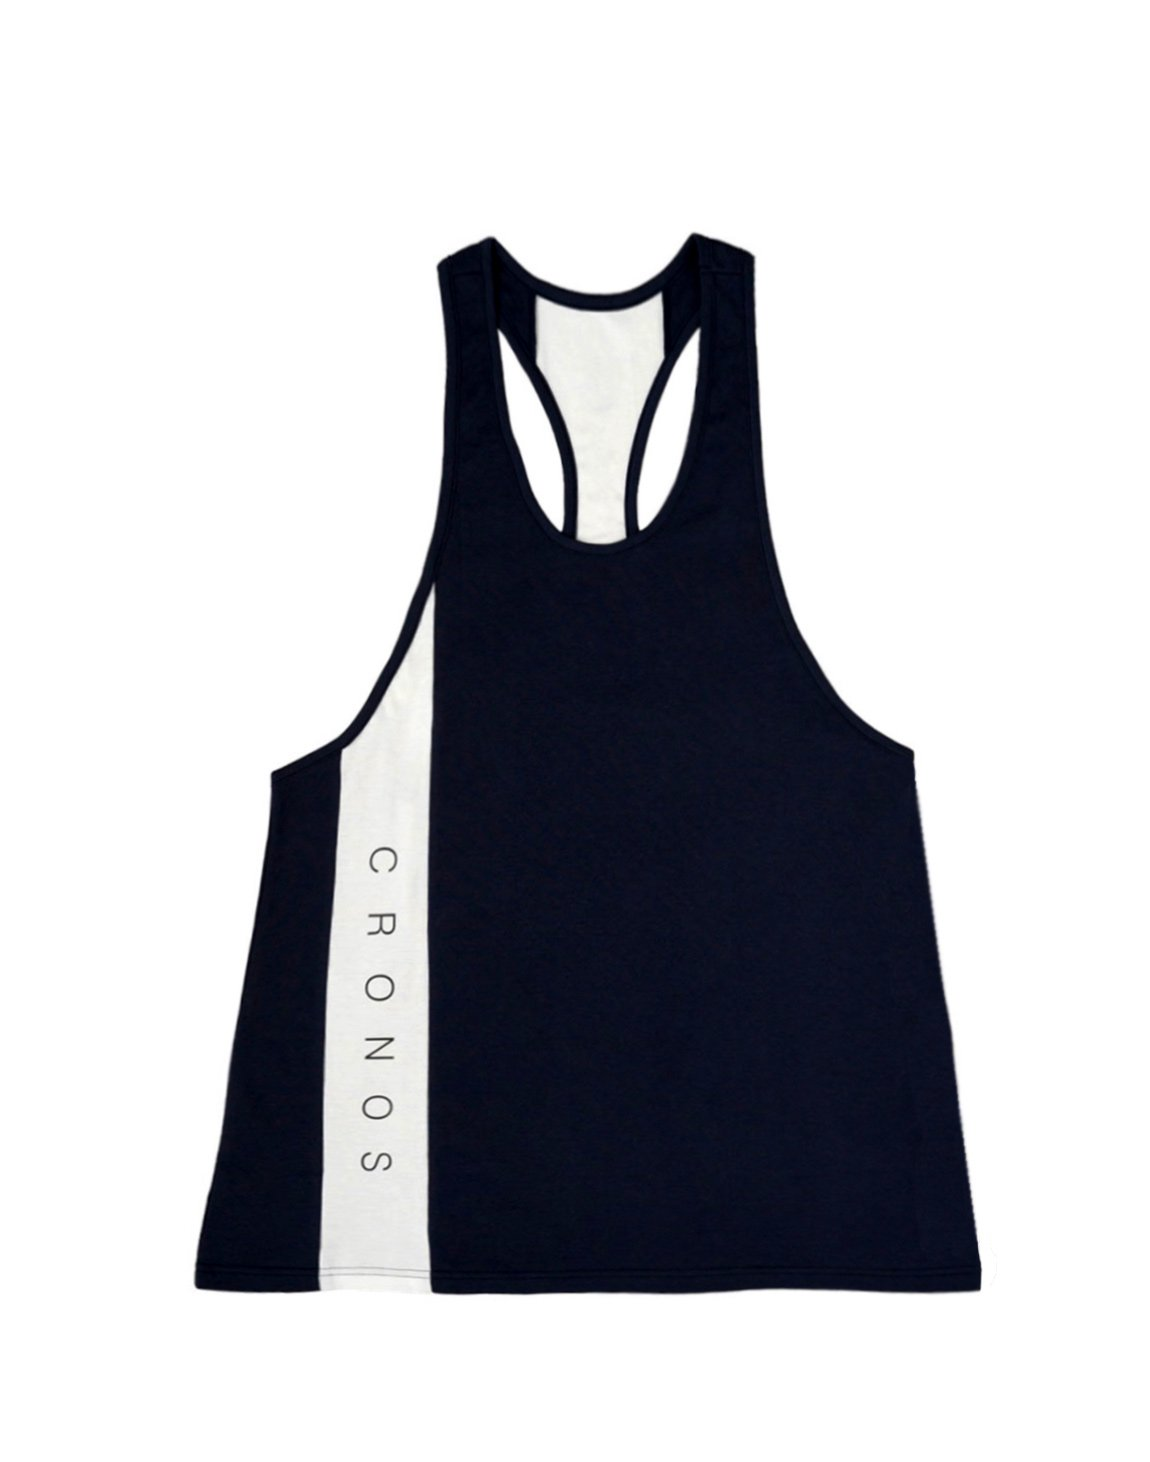 <img class='new_mark_img1' src='https://img.shop-pro.jp/img/new/icons55.gif' style='border:none;display:inline;margin:0px;padding:0px;width:auto;' />CRONOS NEW LINE TANK TOP【BLACK】